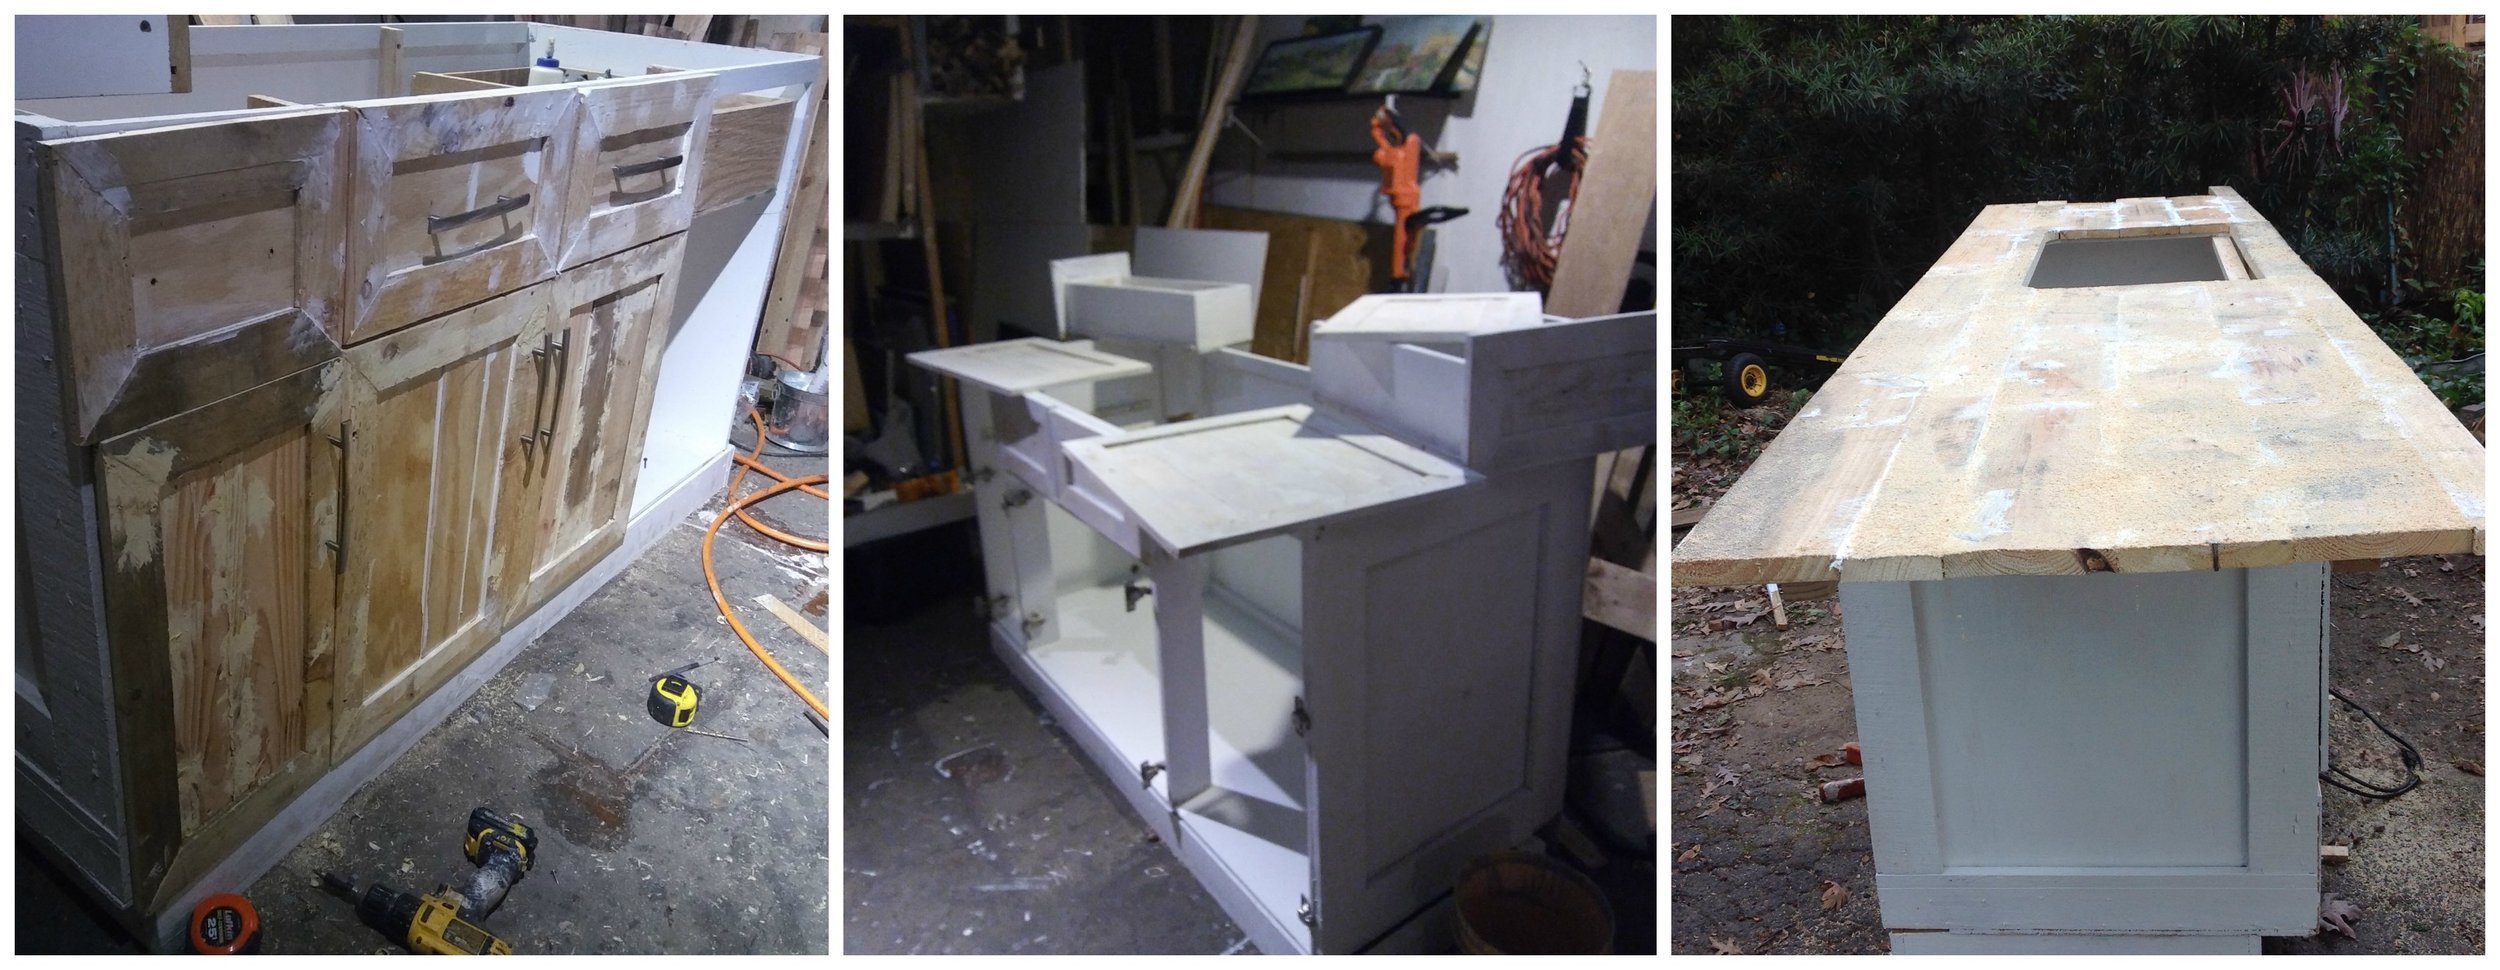 Diy Kitchen Making New Cabinets From Pallet Wood Dawn Kinney Martin